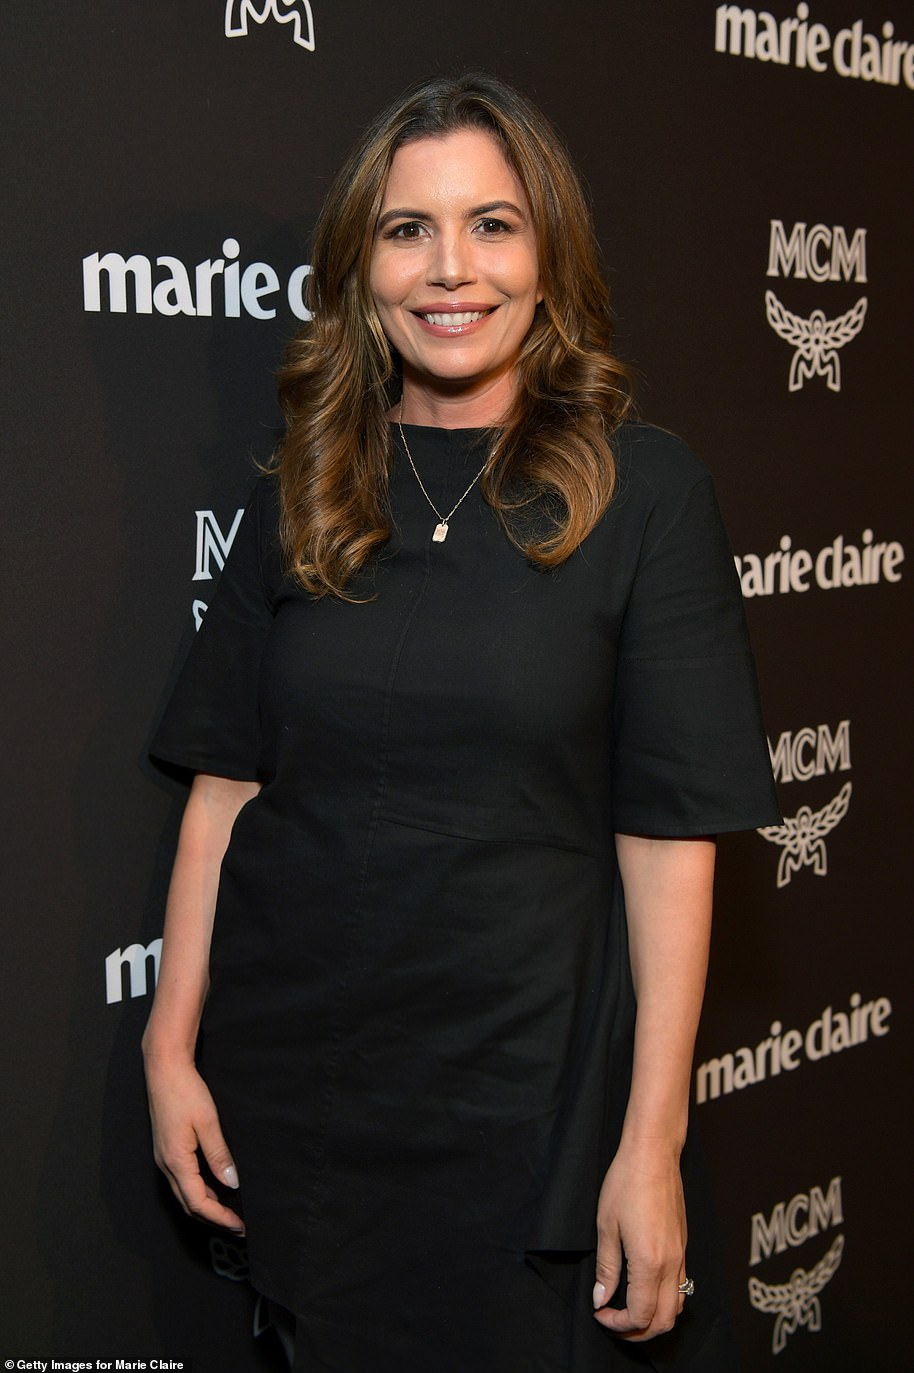 Keleigh Thomas Morgan (pictured) is a long-time friend of Meghan's and was instrumental in setting the Sussexes up in LA, sharing her contacts and a strong network of advisers and famous friends